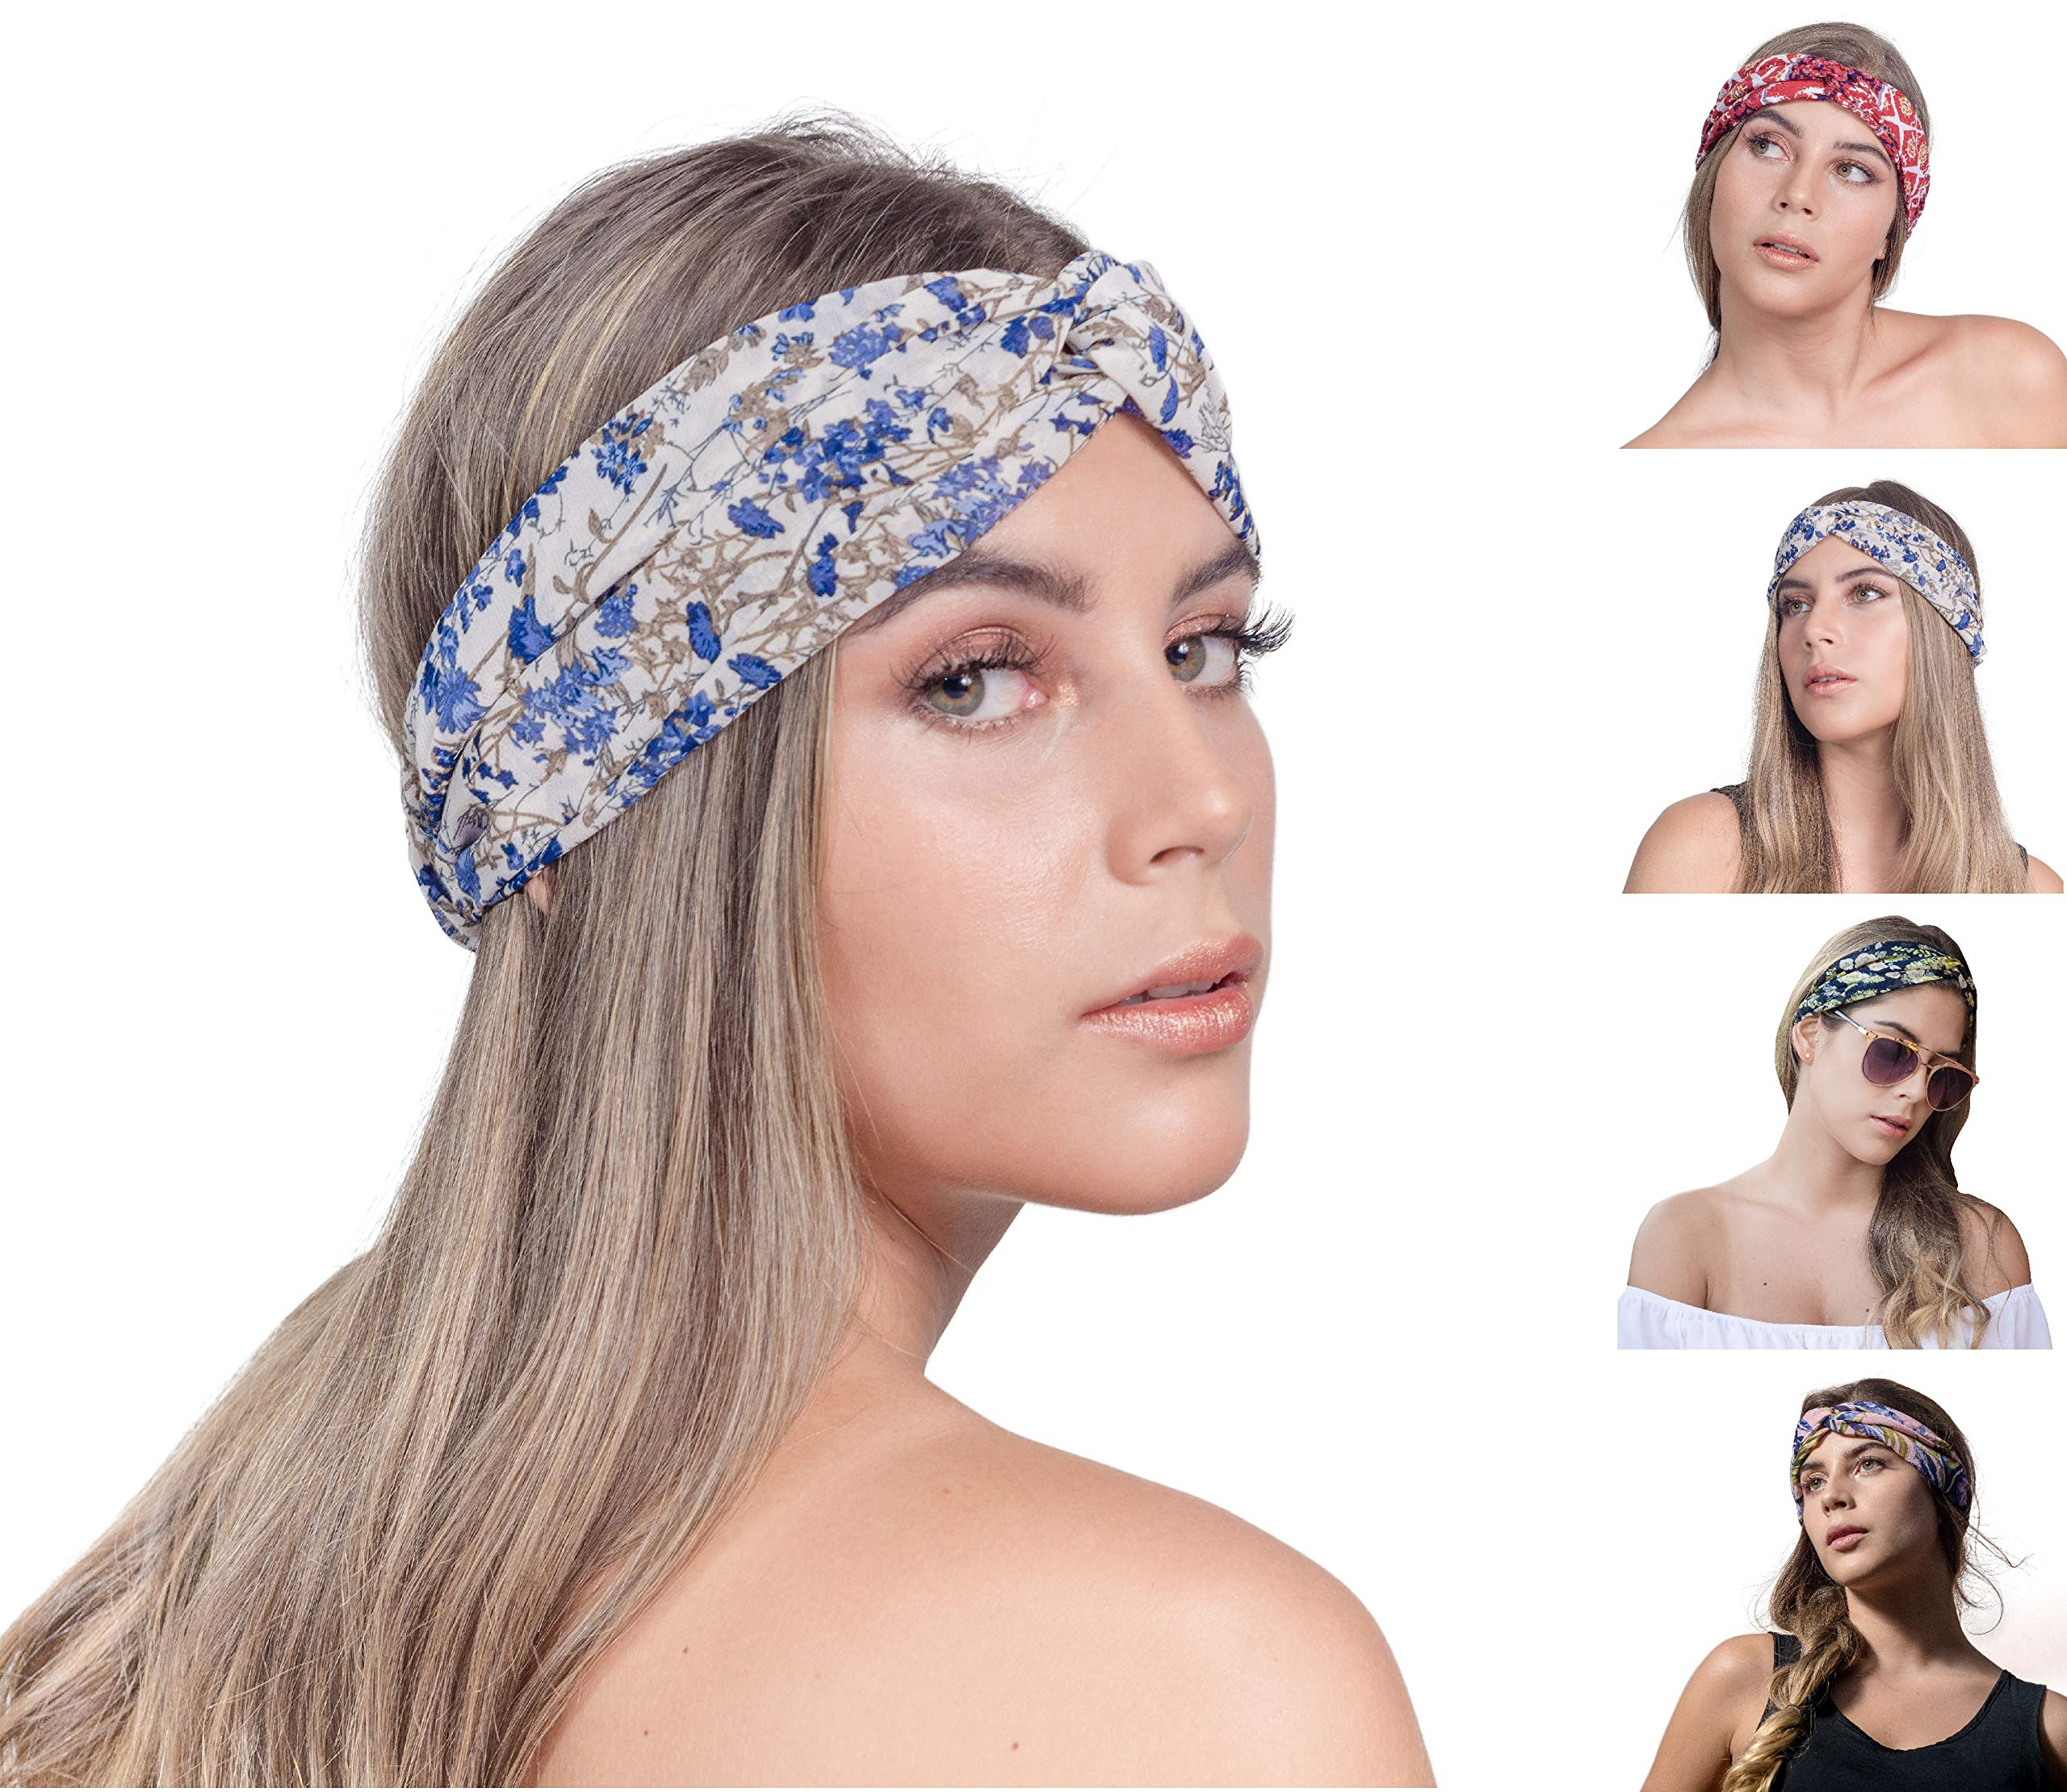 Amazon.com   SEGALA 4 Pack Women Boho Headband Bohemian Floral Style Knot  Hairwrap Flower Printing Twisted Criss Cross Stretchy Hairband   Beauty 199a3facdbc